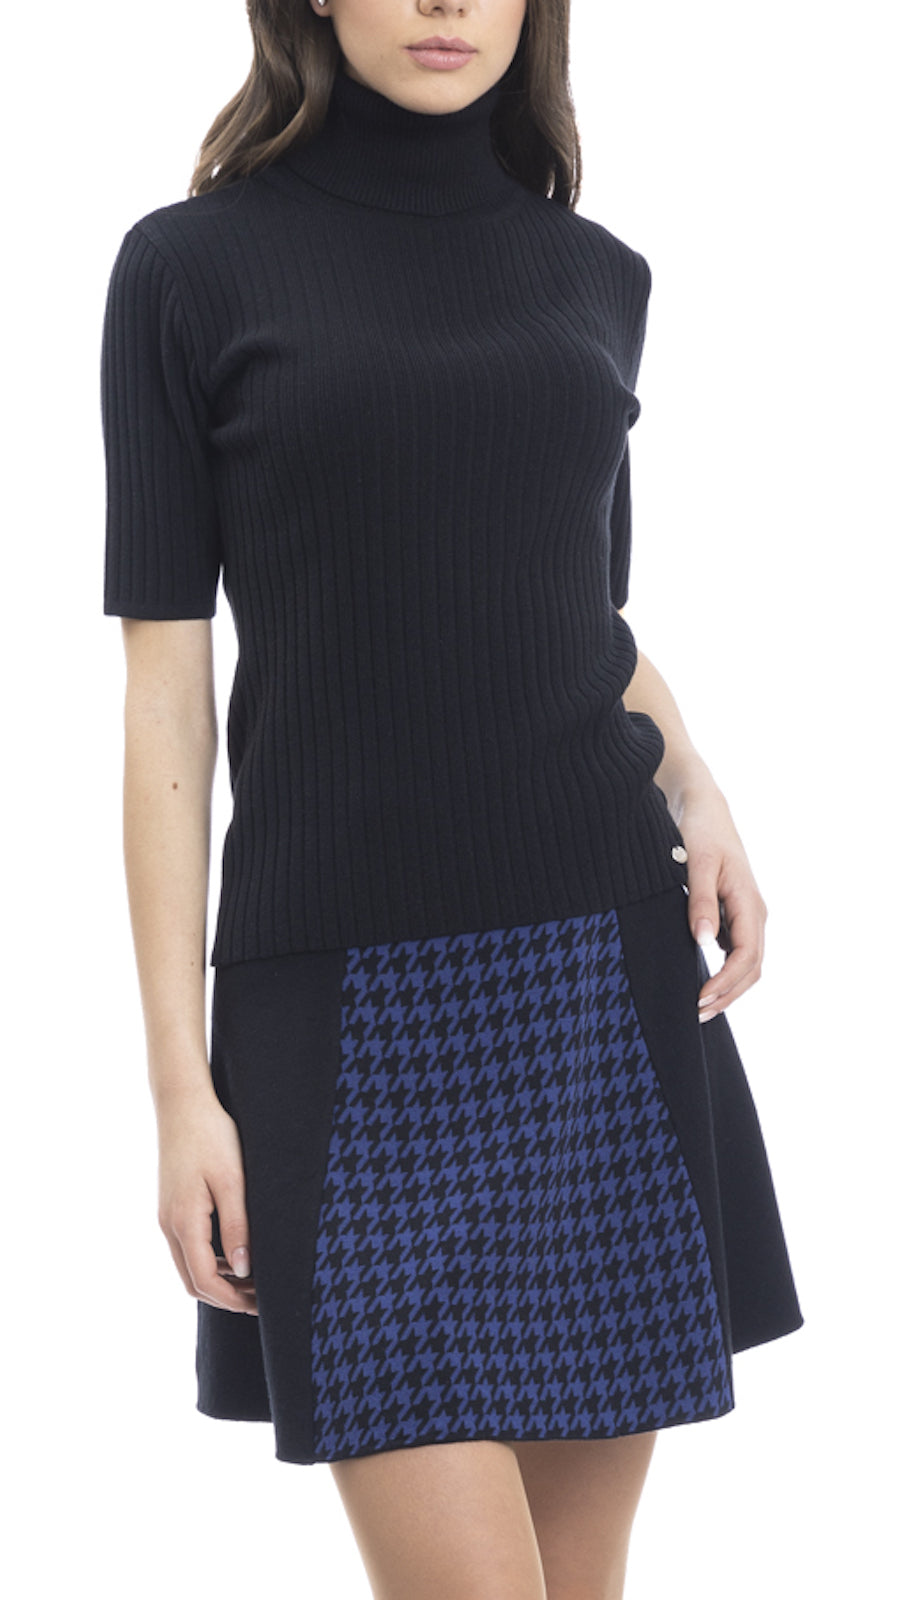 BIANA CONTEMPO Tory Vertical Rib Knit Turtle Neck Top; Black